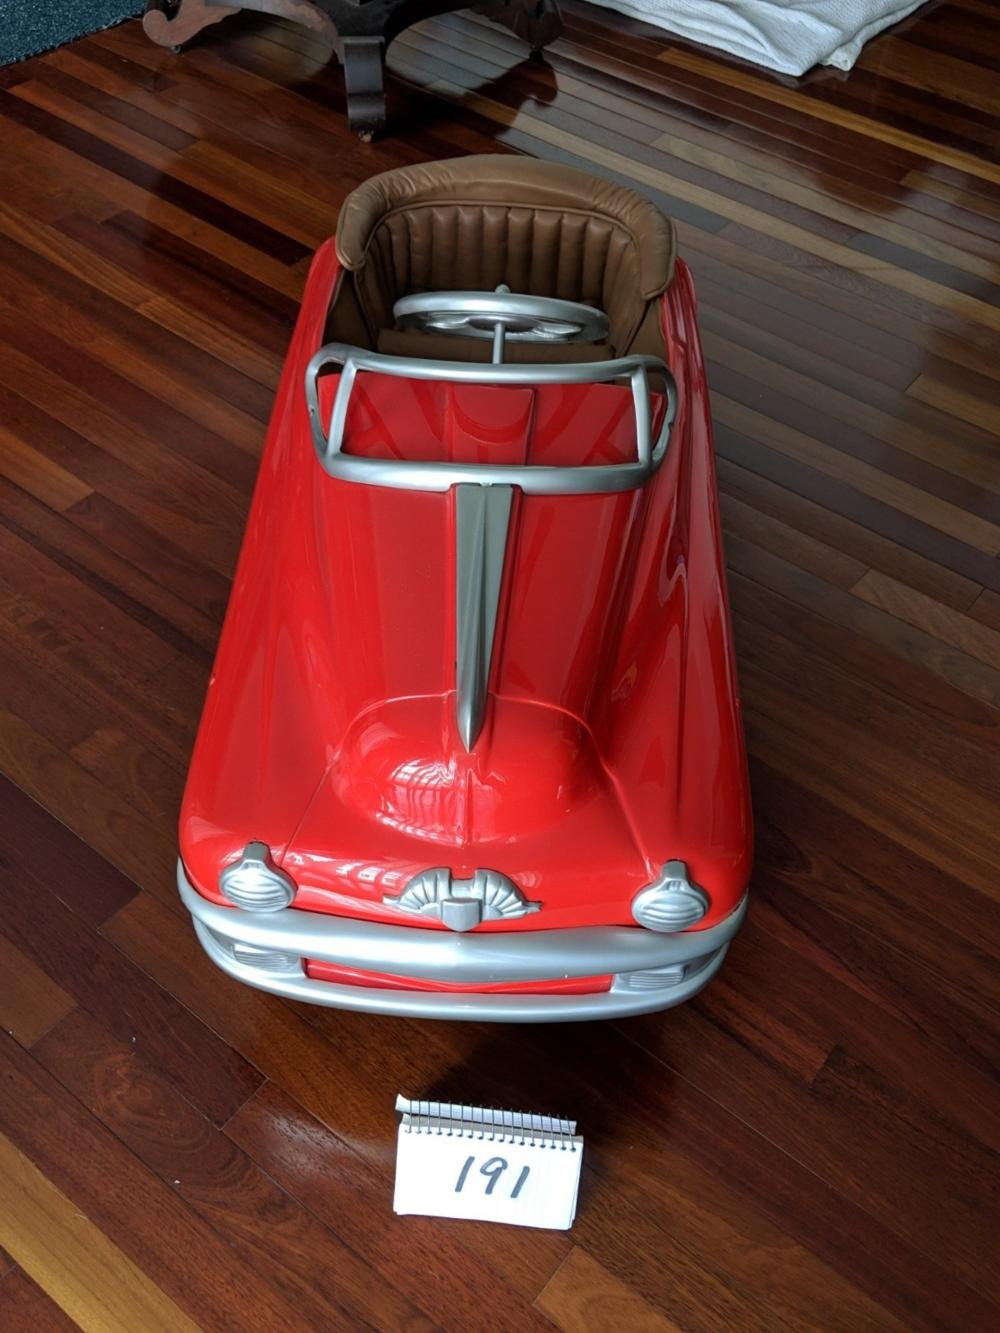 1949 Torpedo Pedal Car Restored